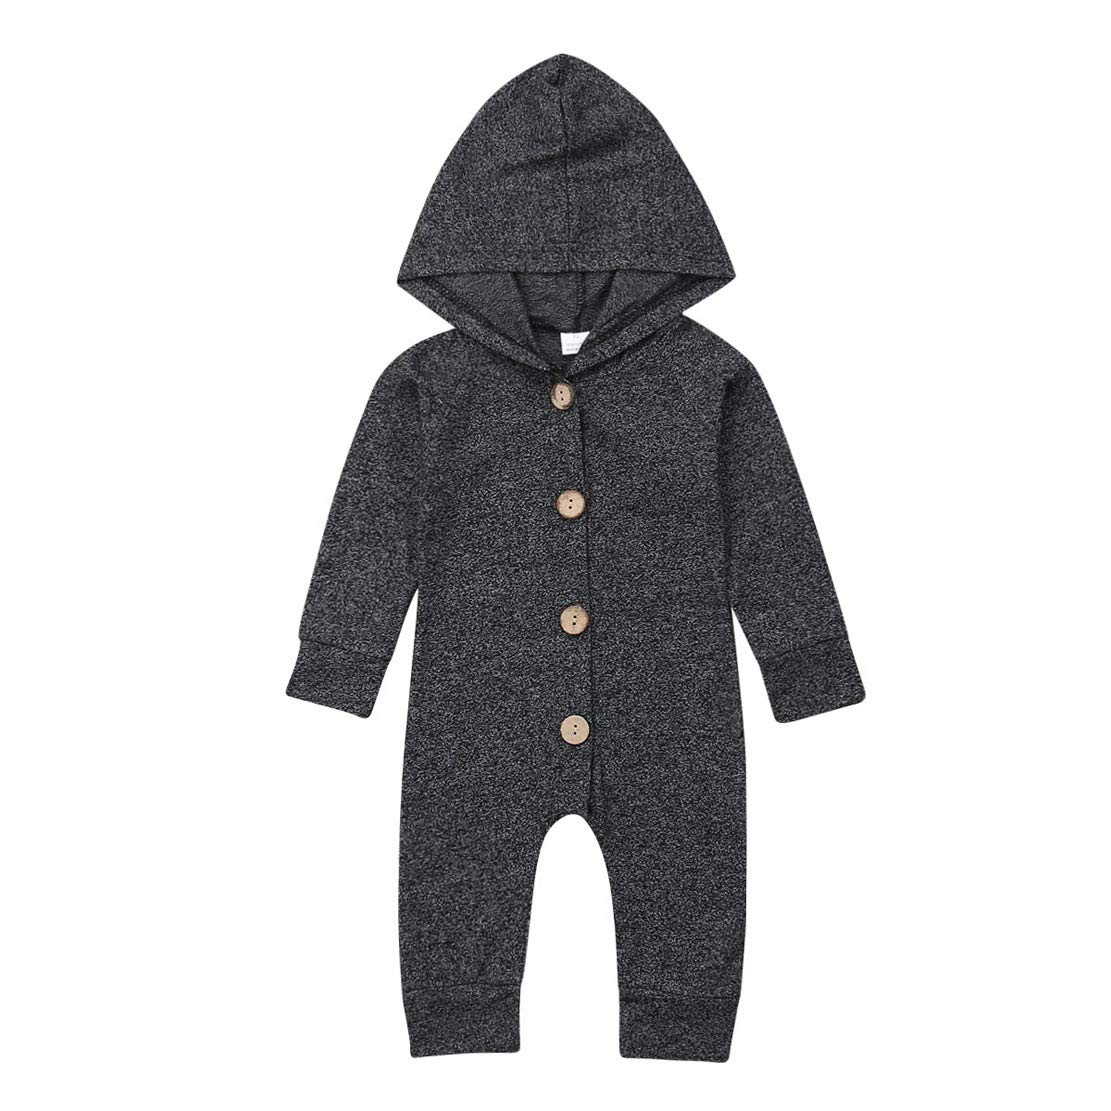 do.Cross Newborn Kids Toddler Baby Boys Cute Solid Color Long Sleeve Hooded Romper Jumpsuit Top Outfits